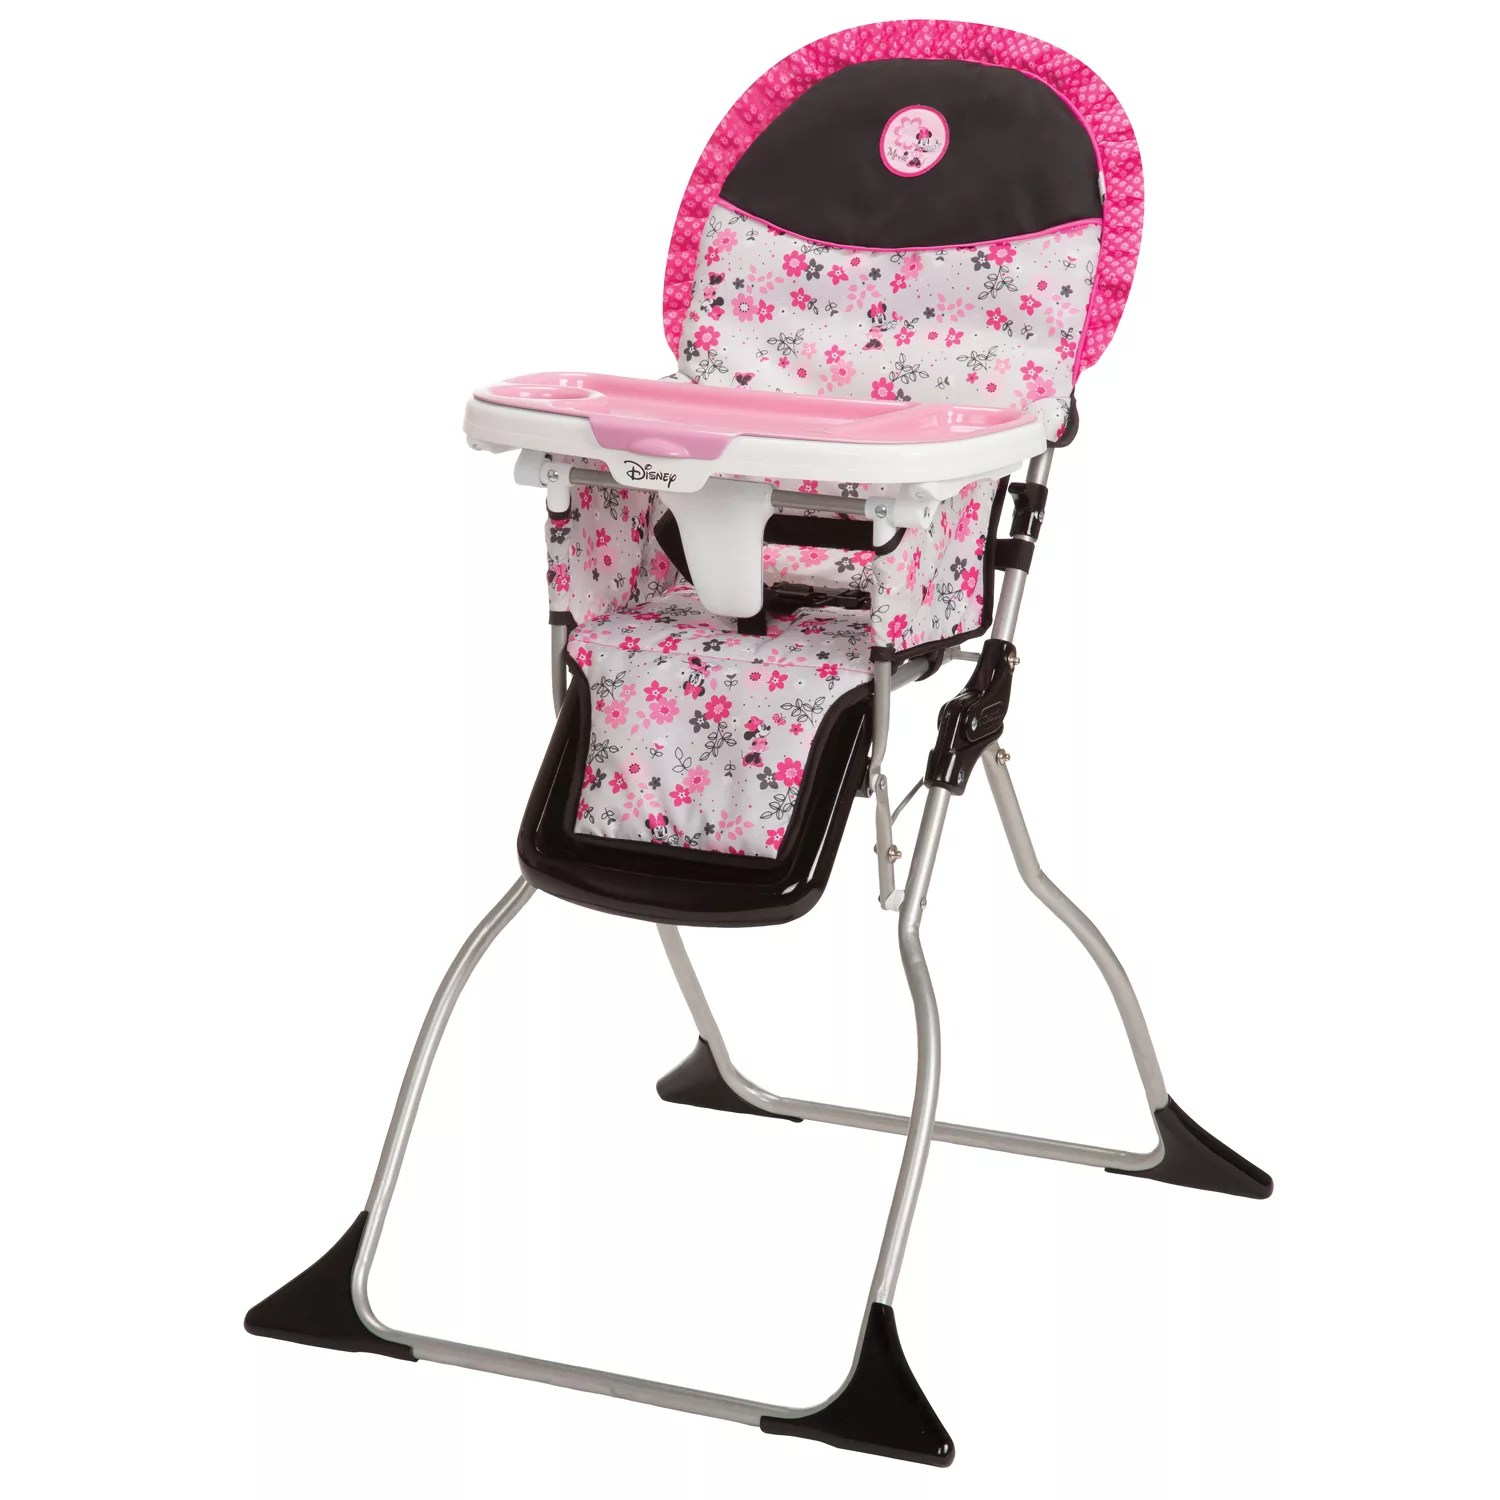 graco slim fold high chair universal wedding covers sale chairs baby kohl s disney minnie mouse simple